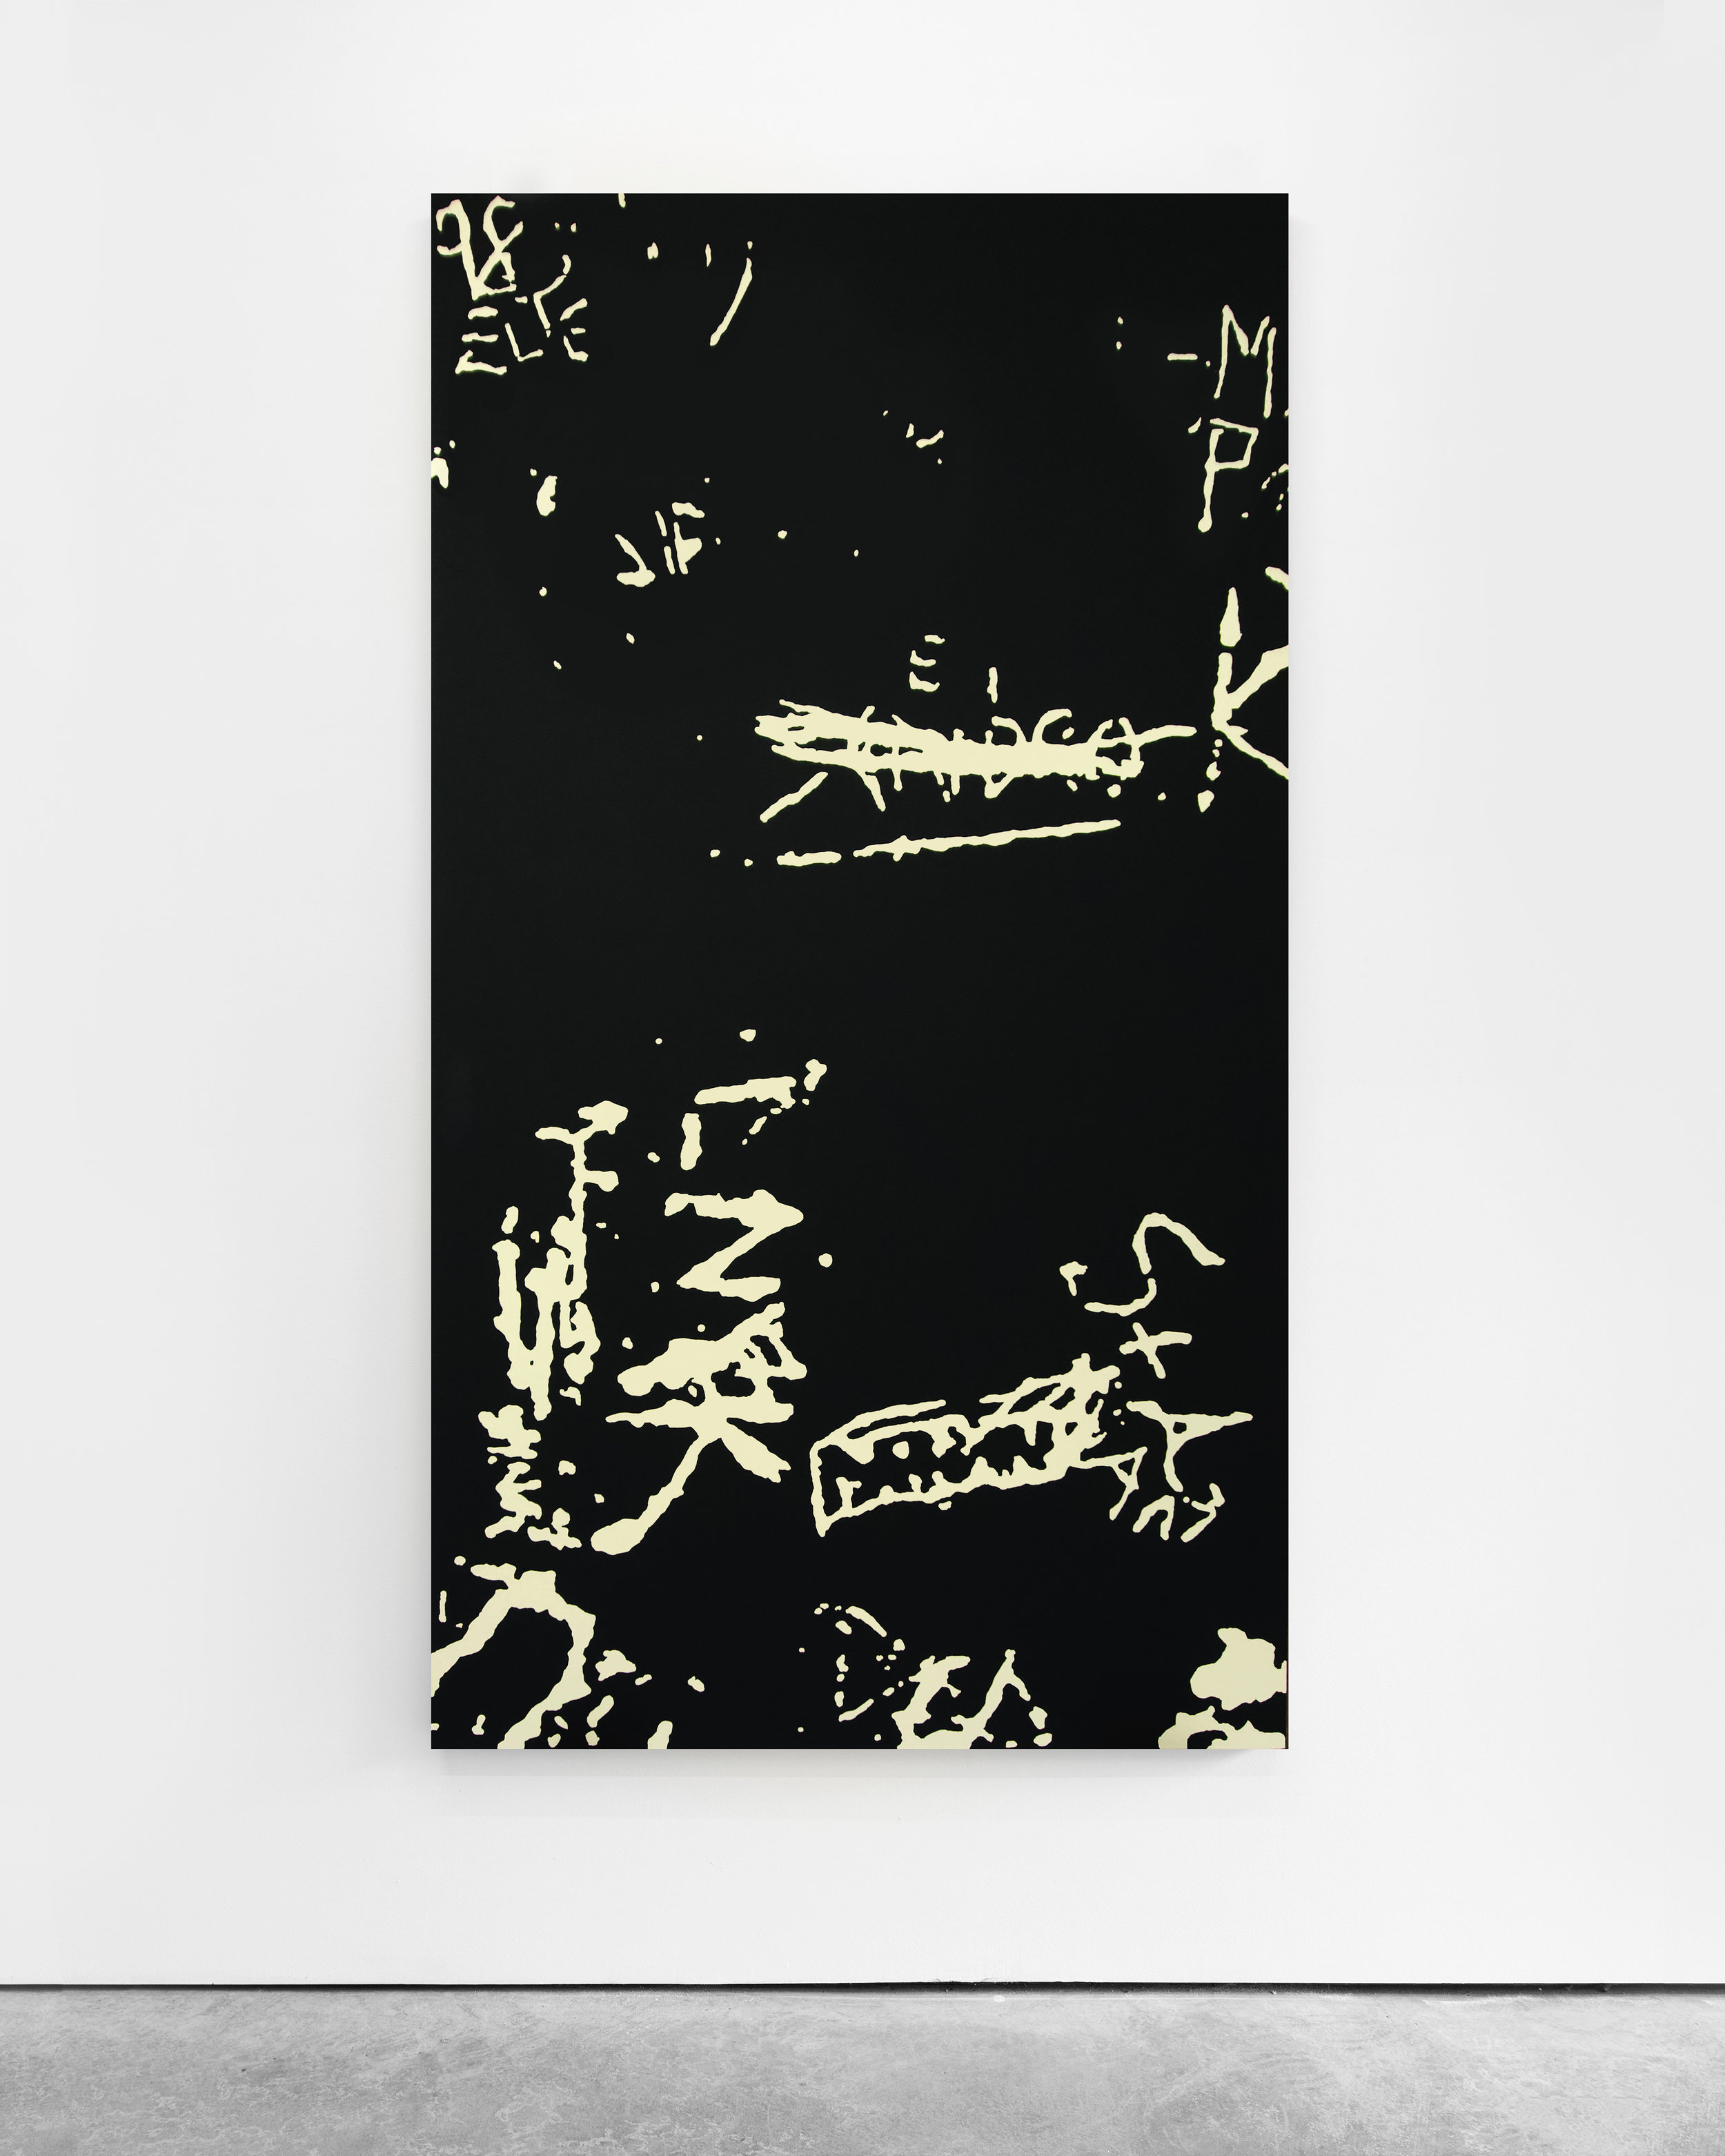 Pedro Matos  Untitled (MP) , 2018 Acrylic enamel on canvas 180 x 100 cm